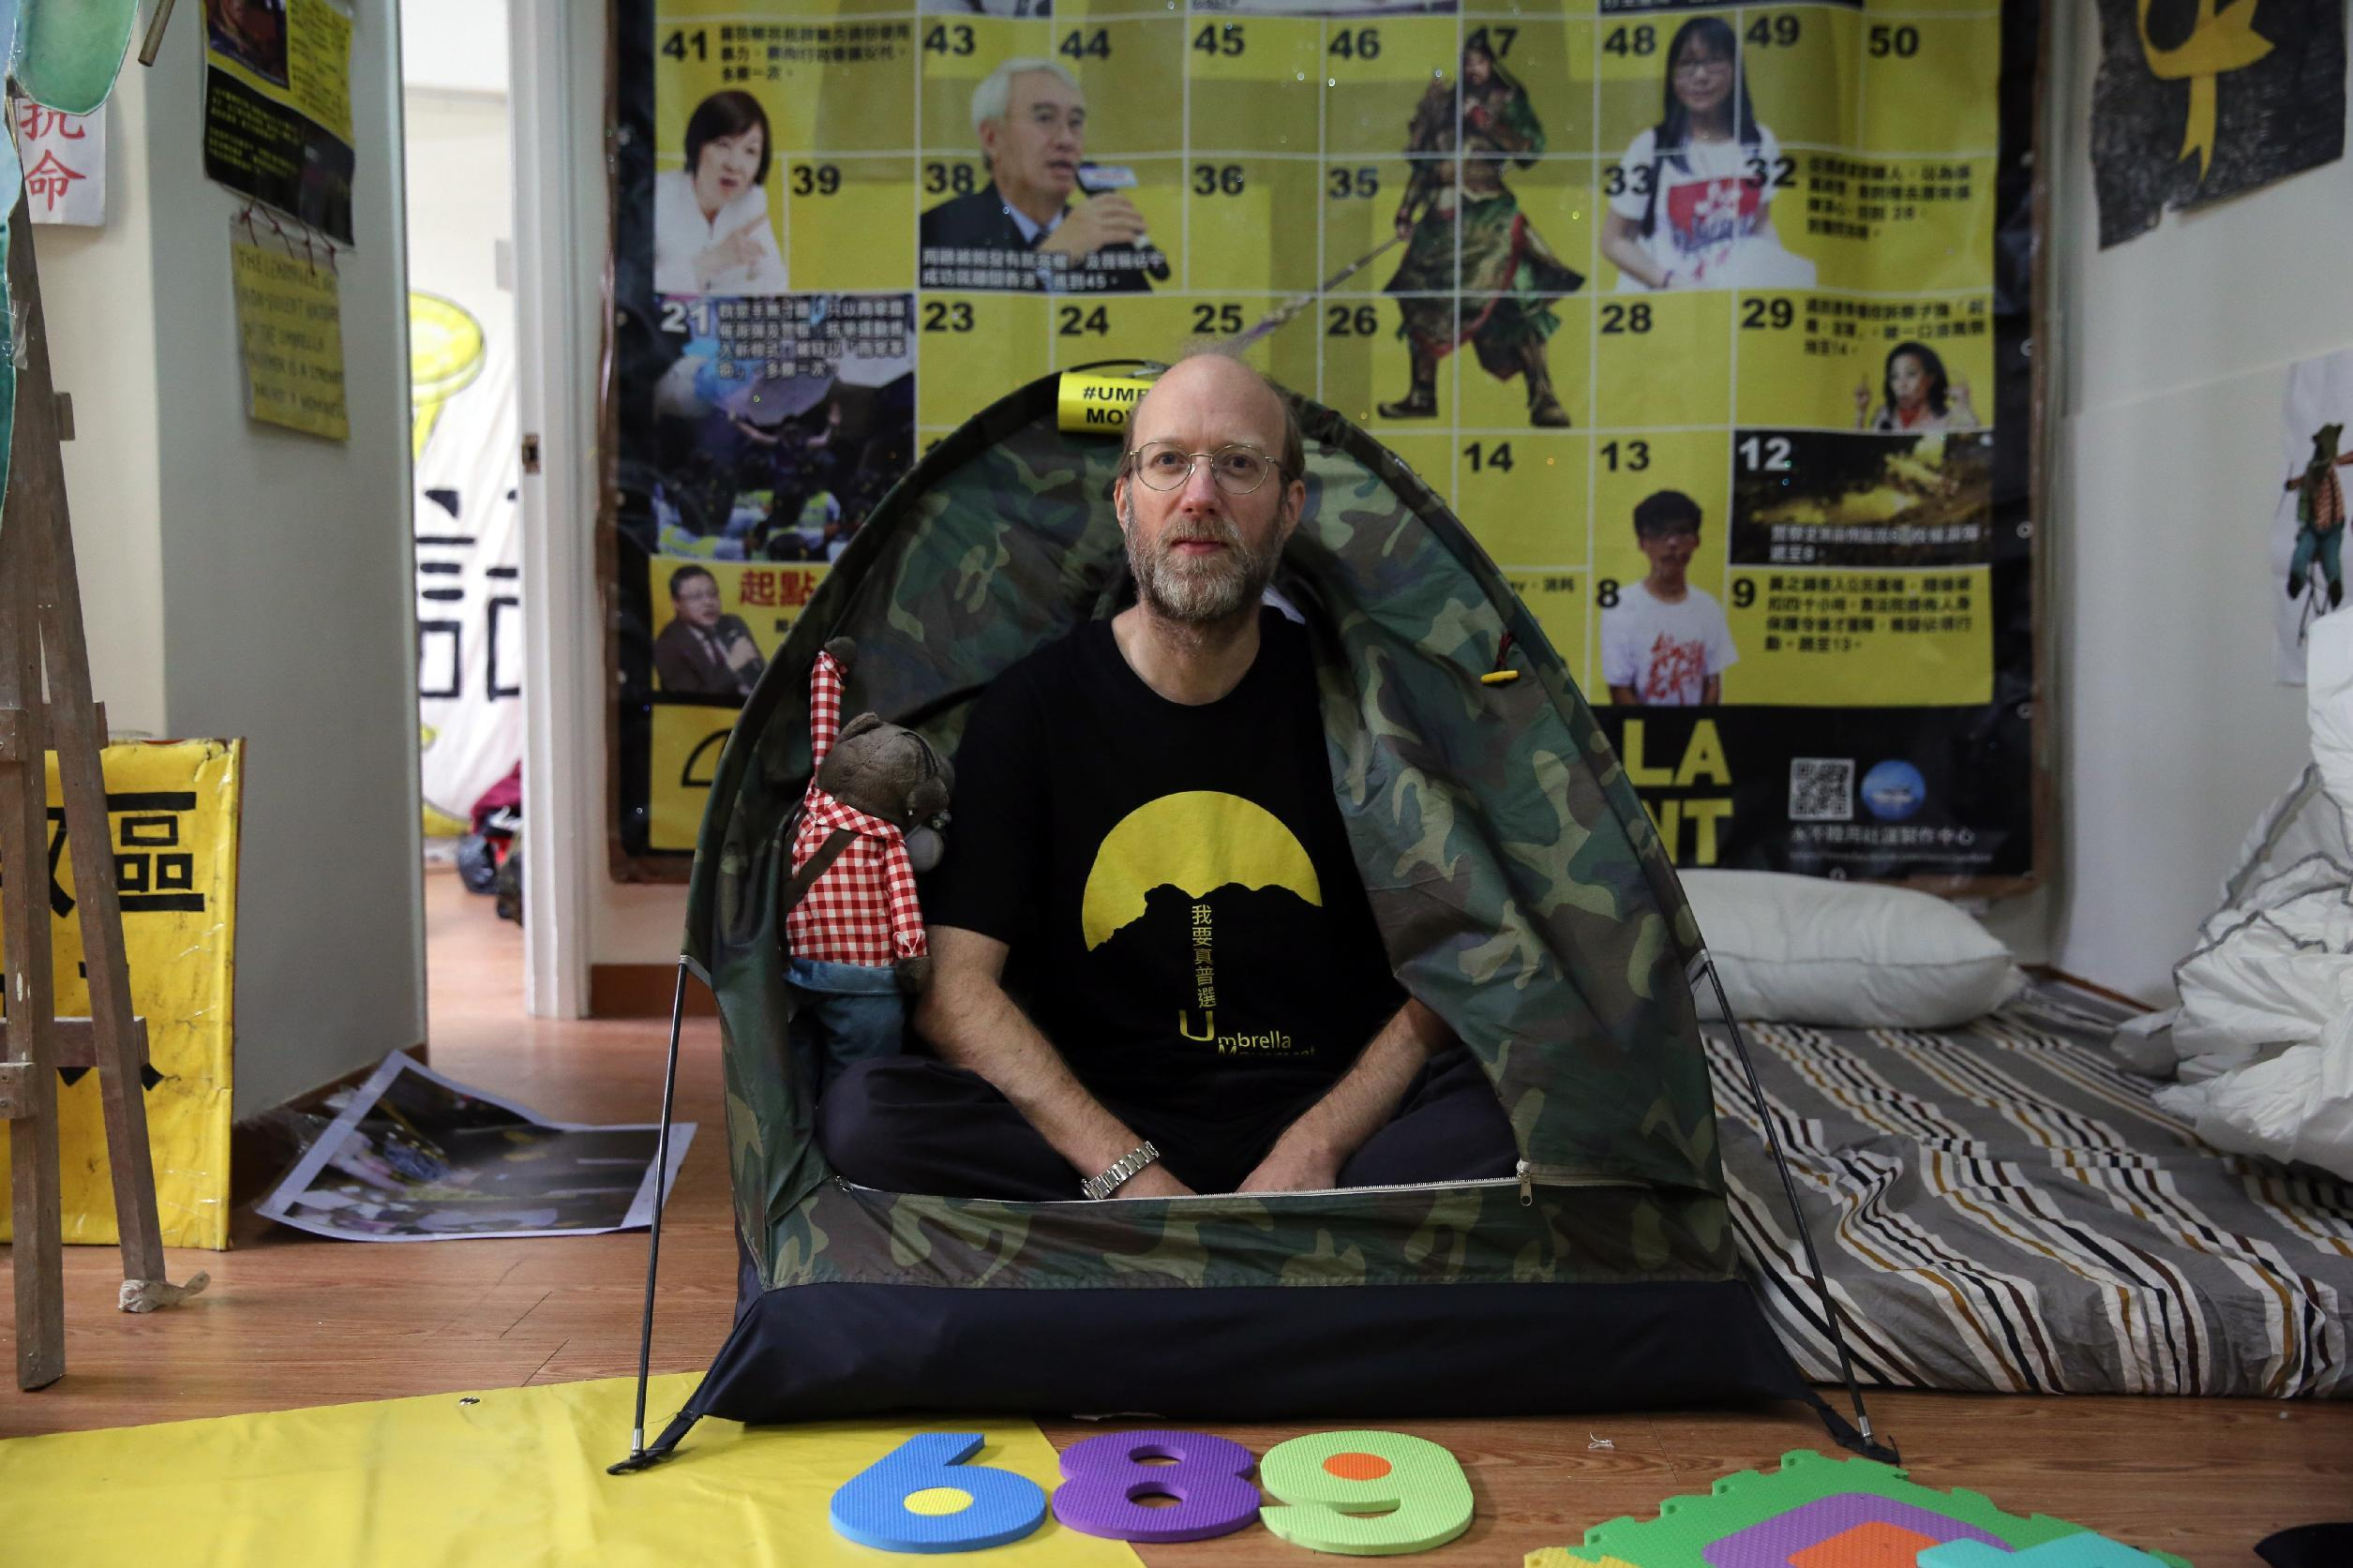 Hong Kong 'Occupy hotel' recreates protest camp for guests